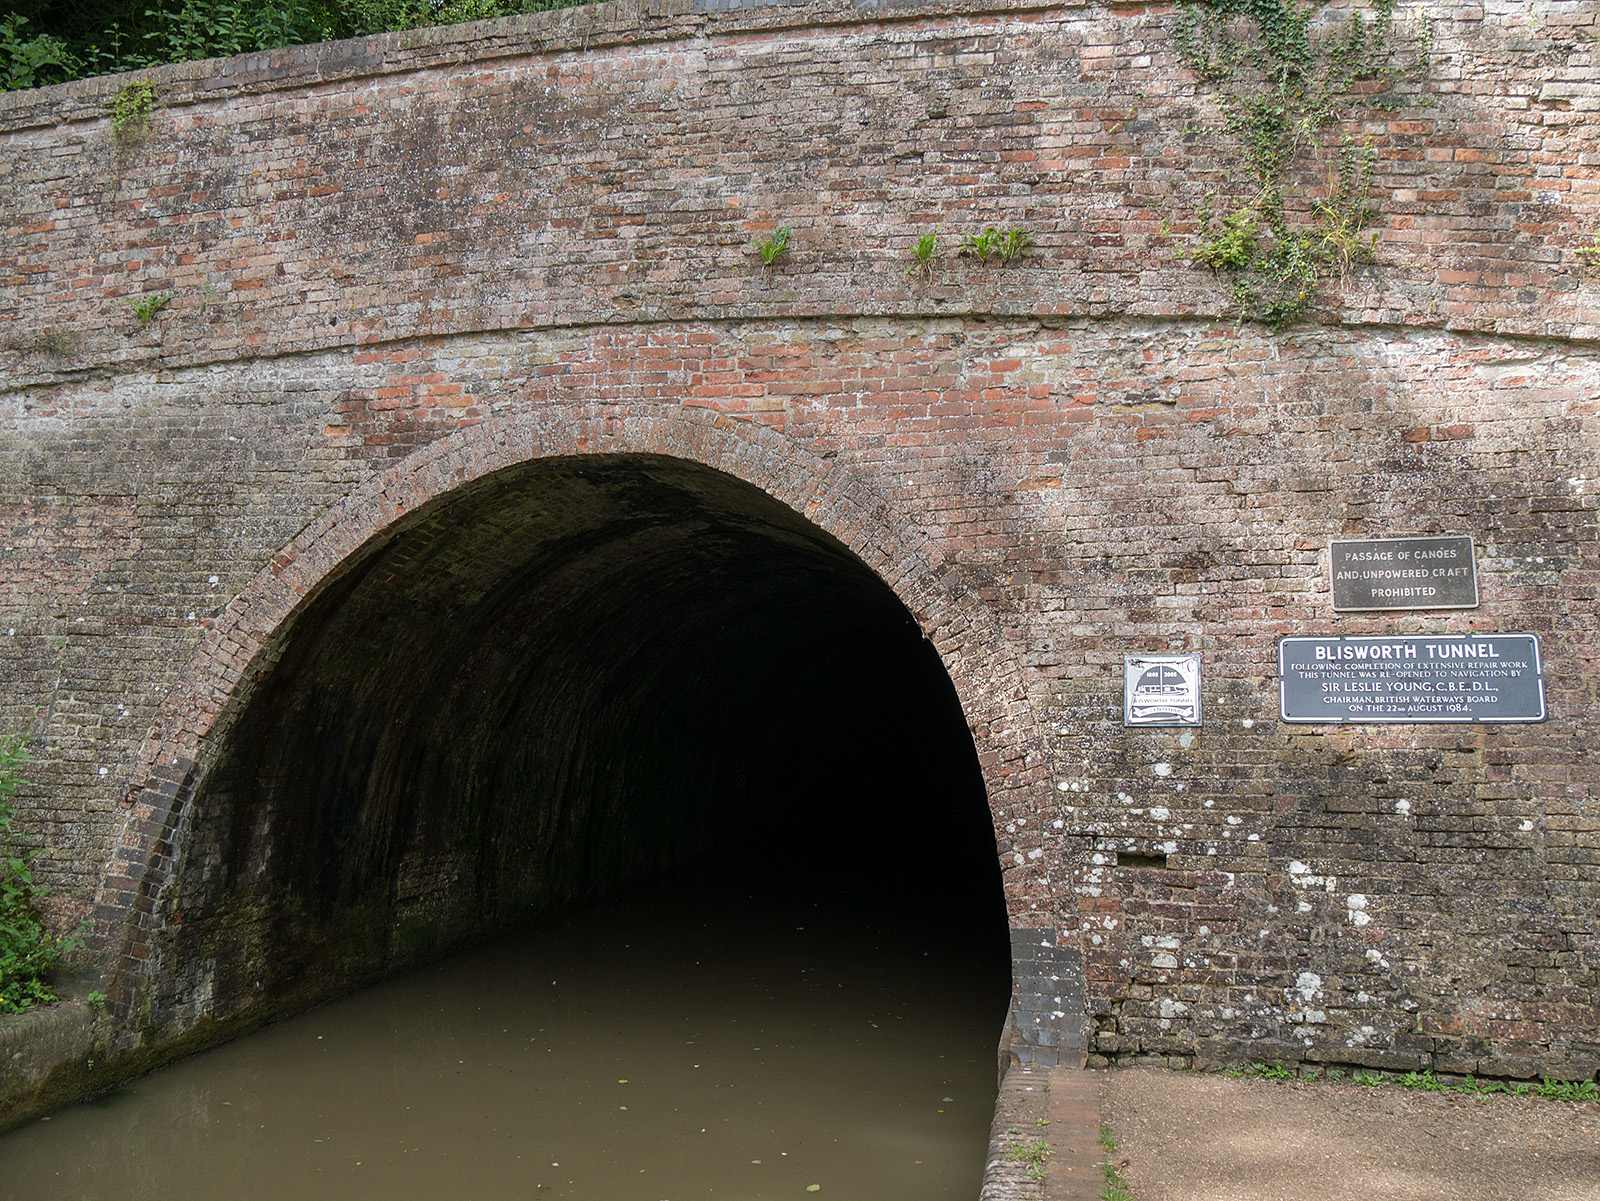 End of this walk for now - the southern entry to Blisworth Tunnel